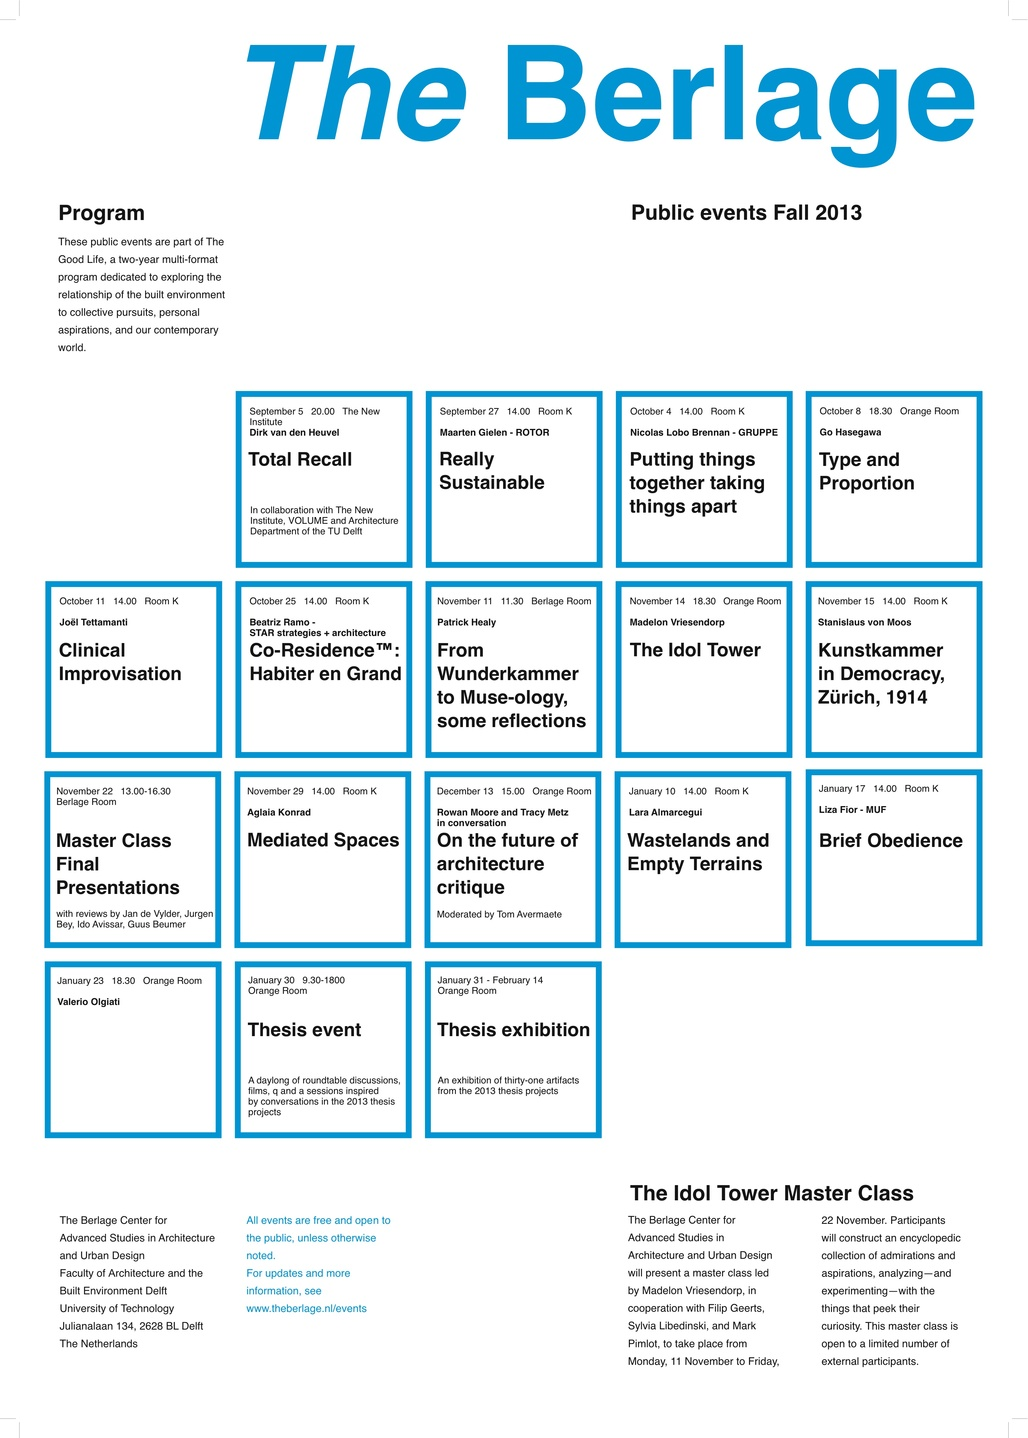 Public events poster for The Berlage Center, TU Delft. Image courtesy of The Berlage Center.